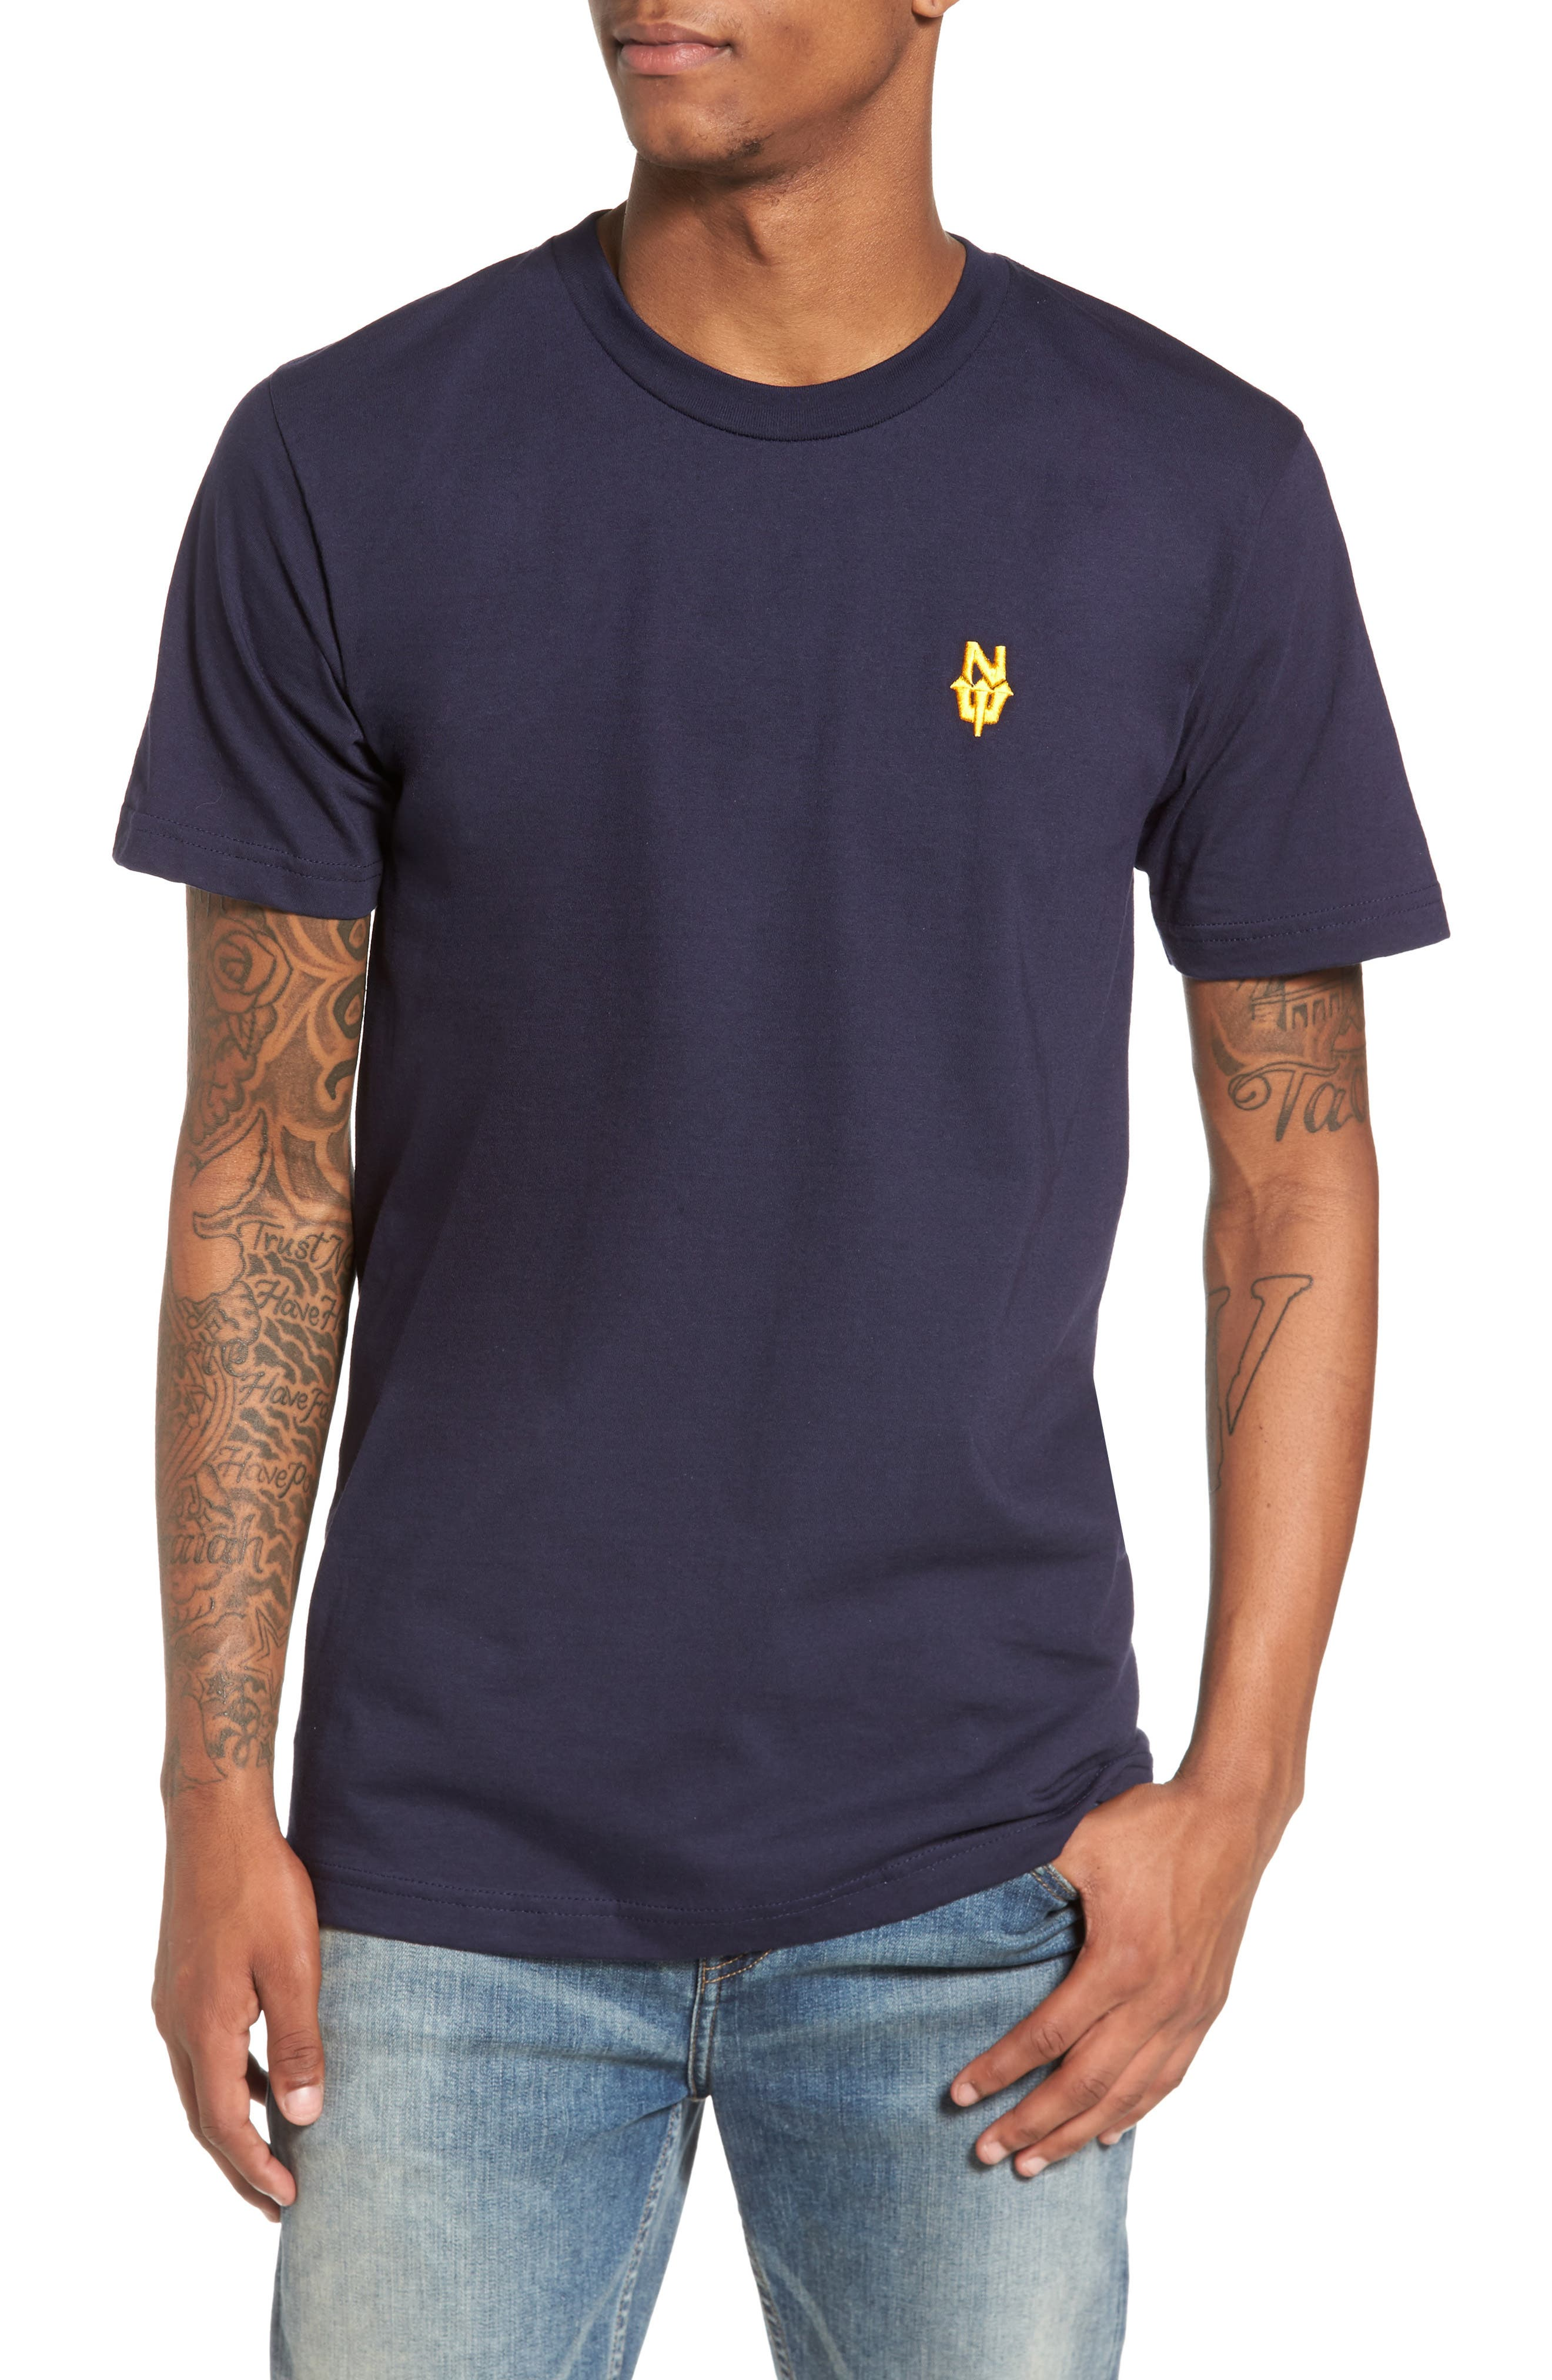 N. Dub T-Shirt,                         Main,                         color, Navy Blue